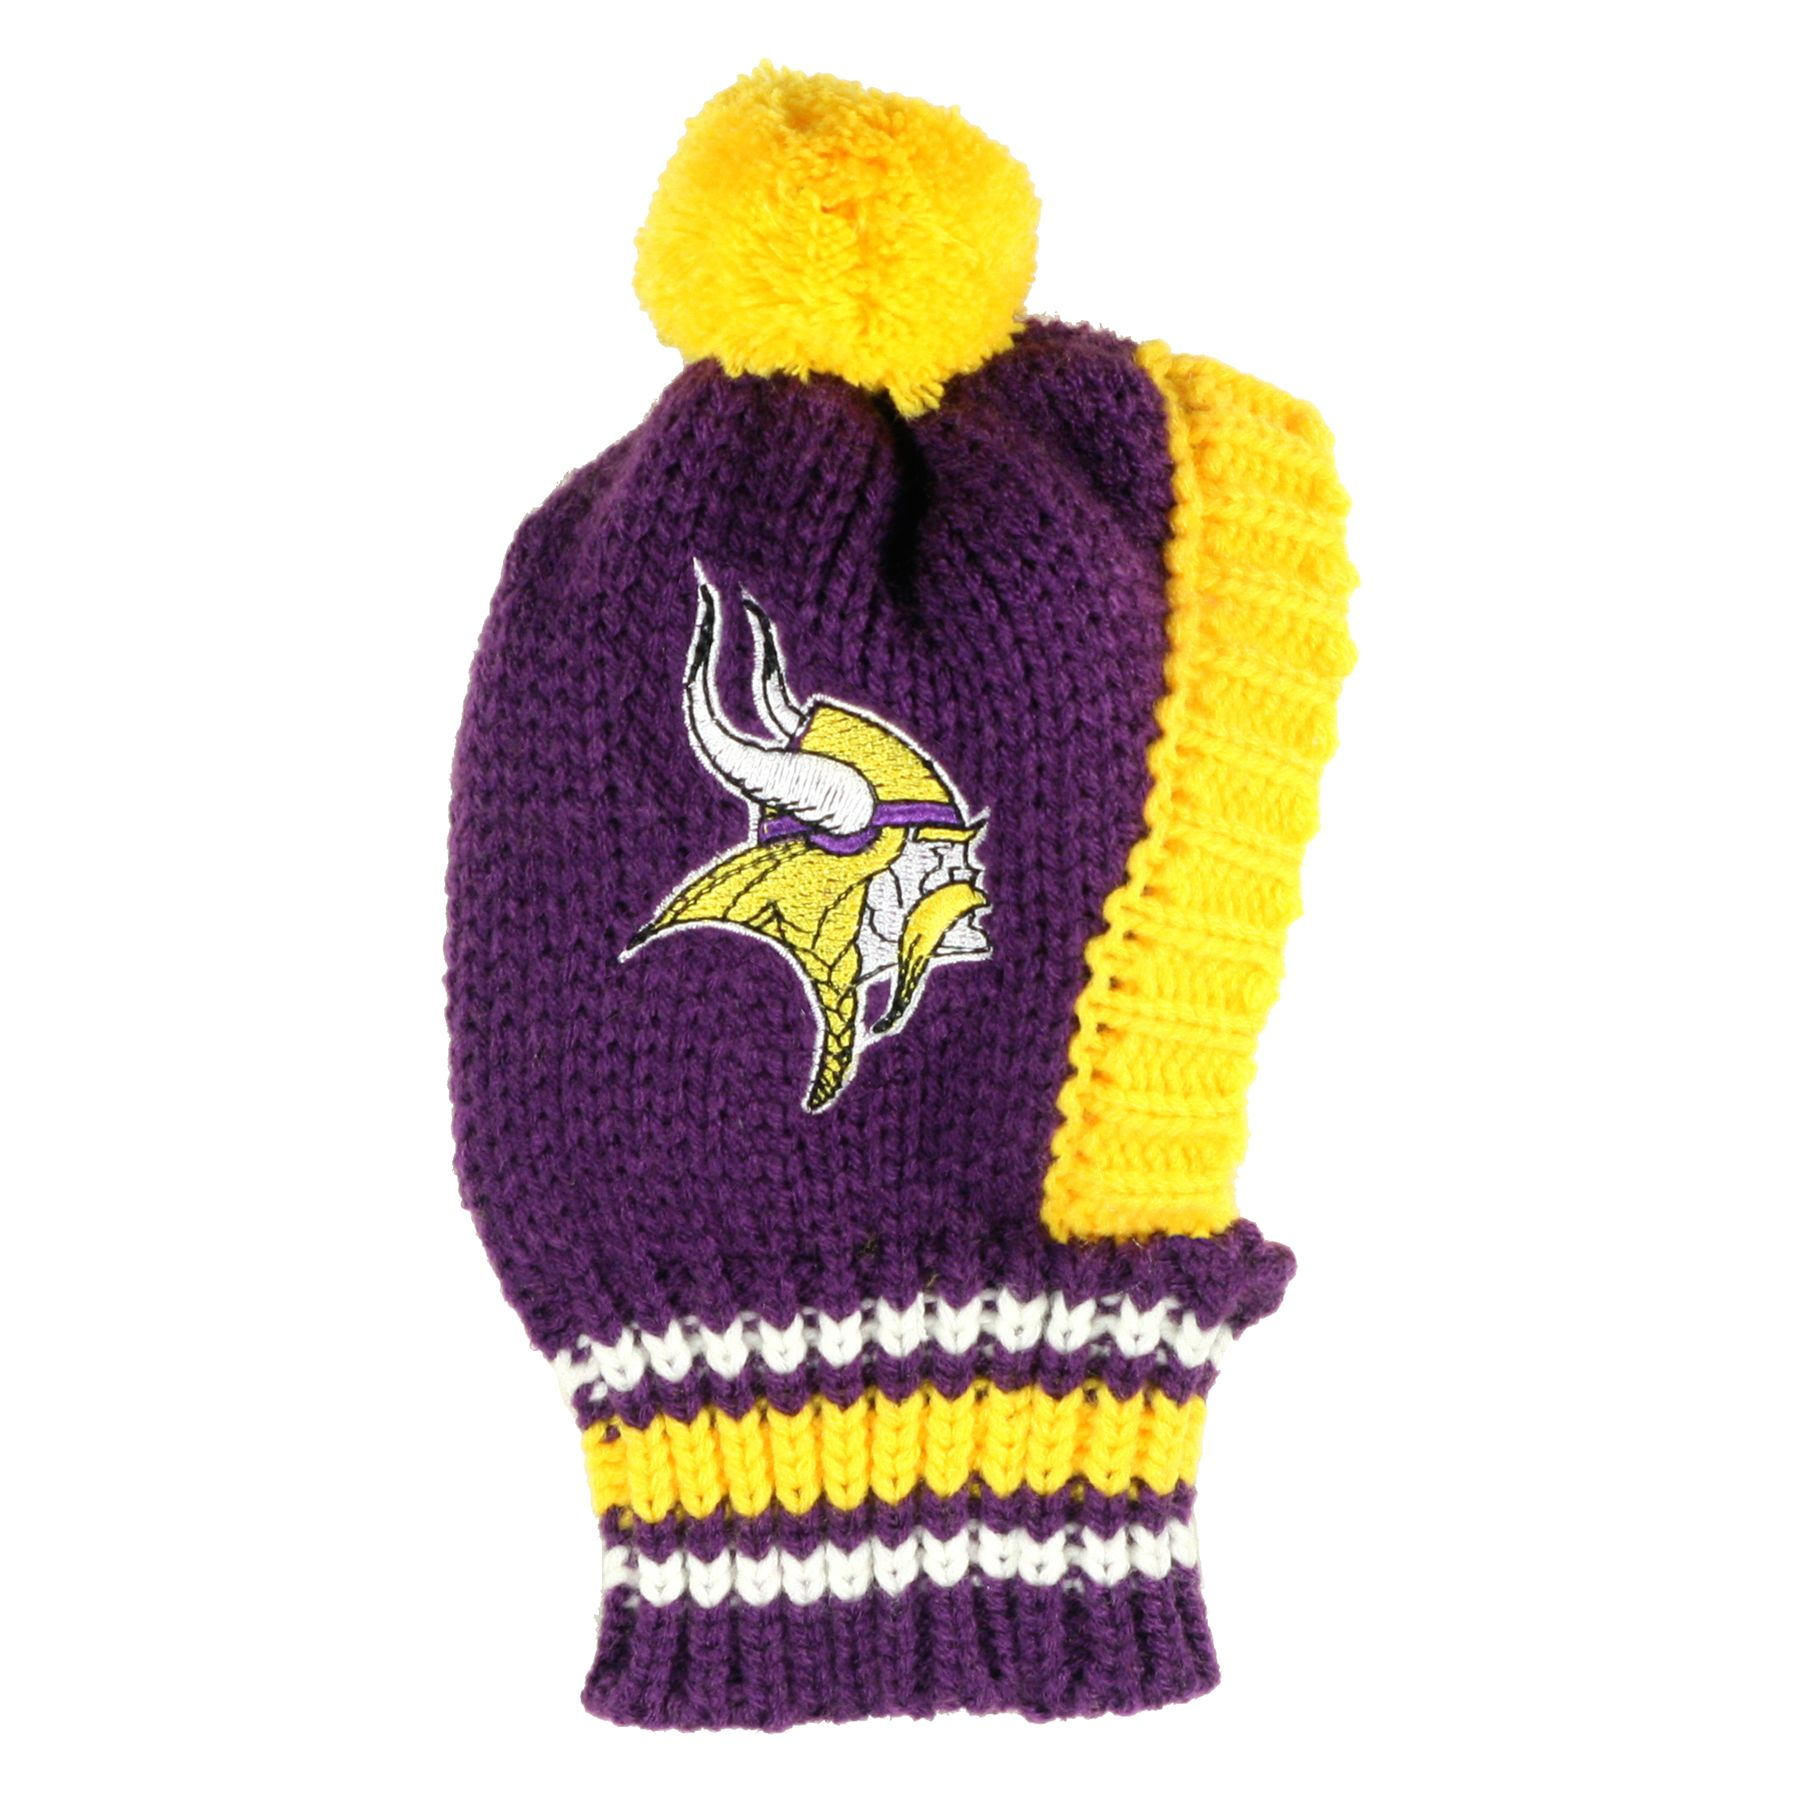 Minnesota Vikings NFL Knit Hat size: Large, Hip Doggie photo